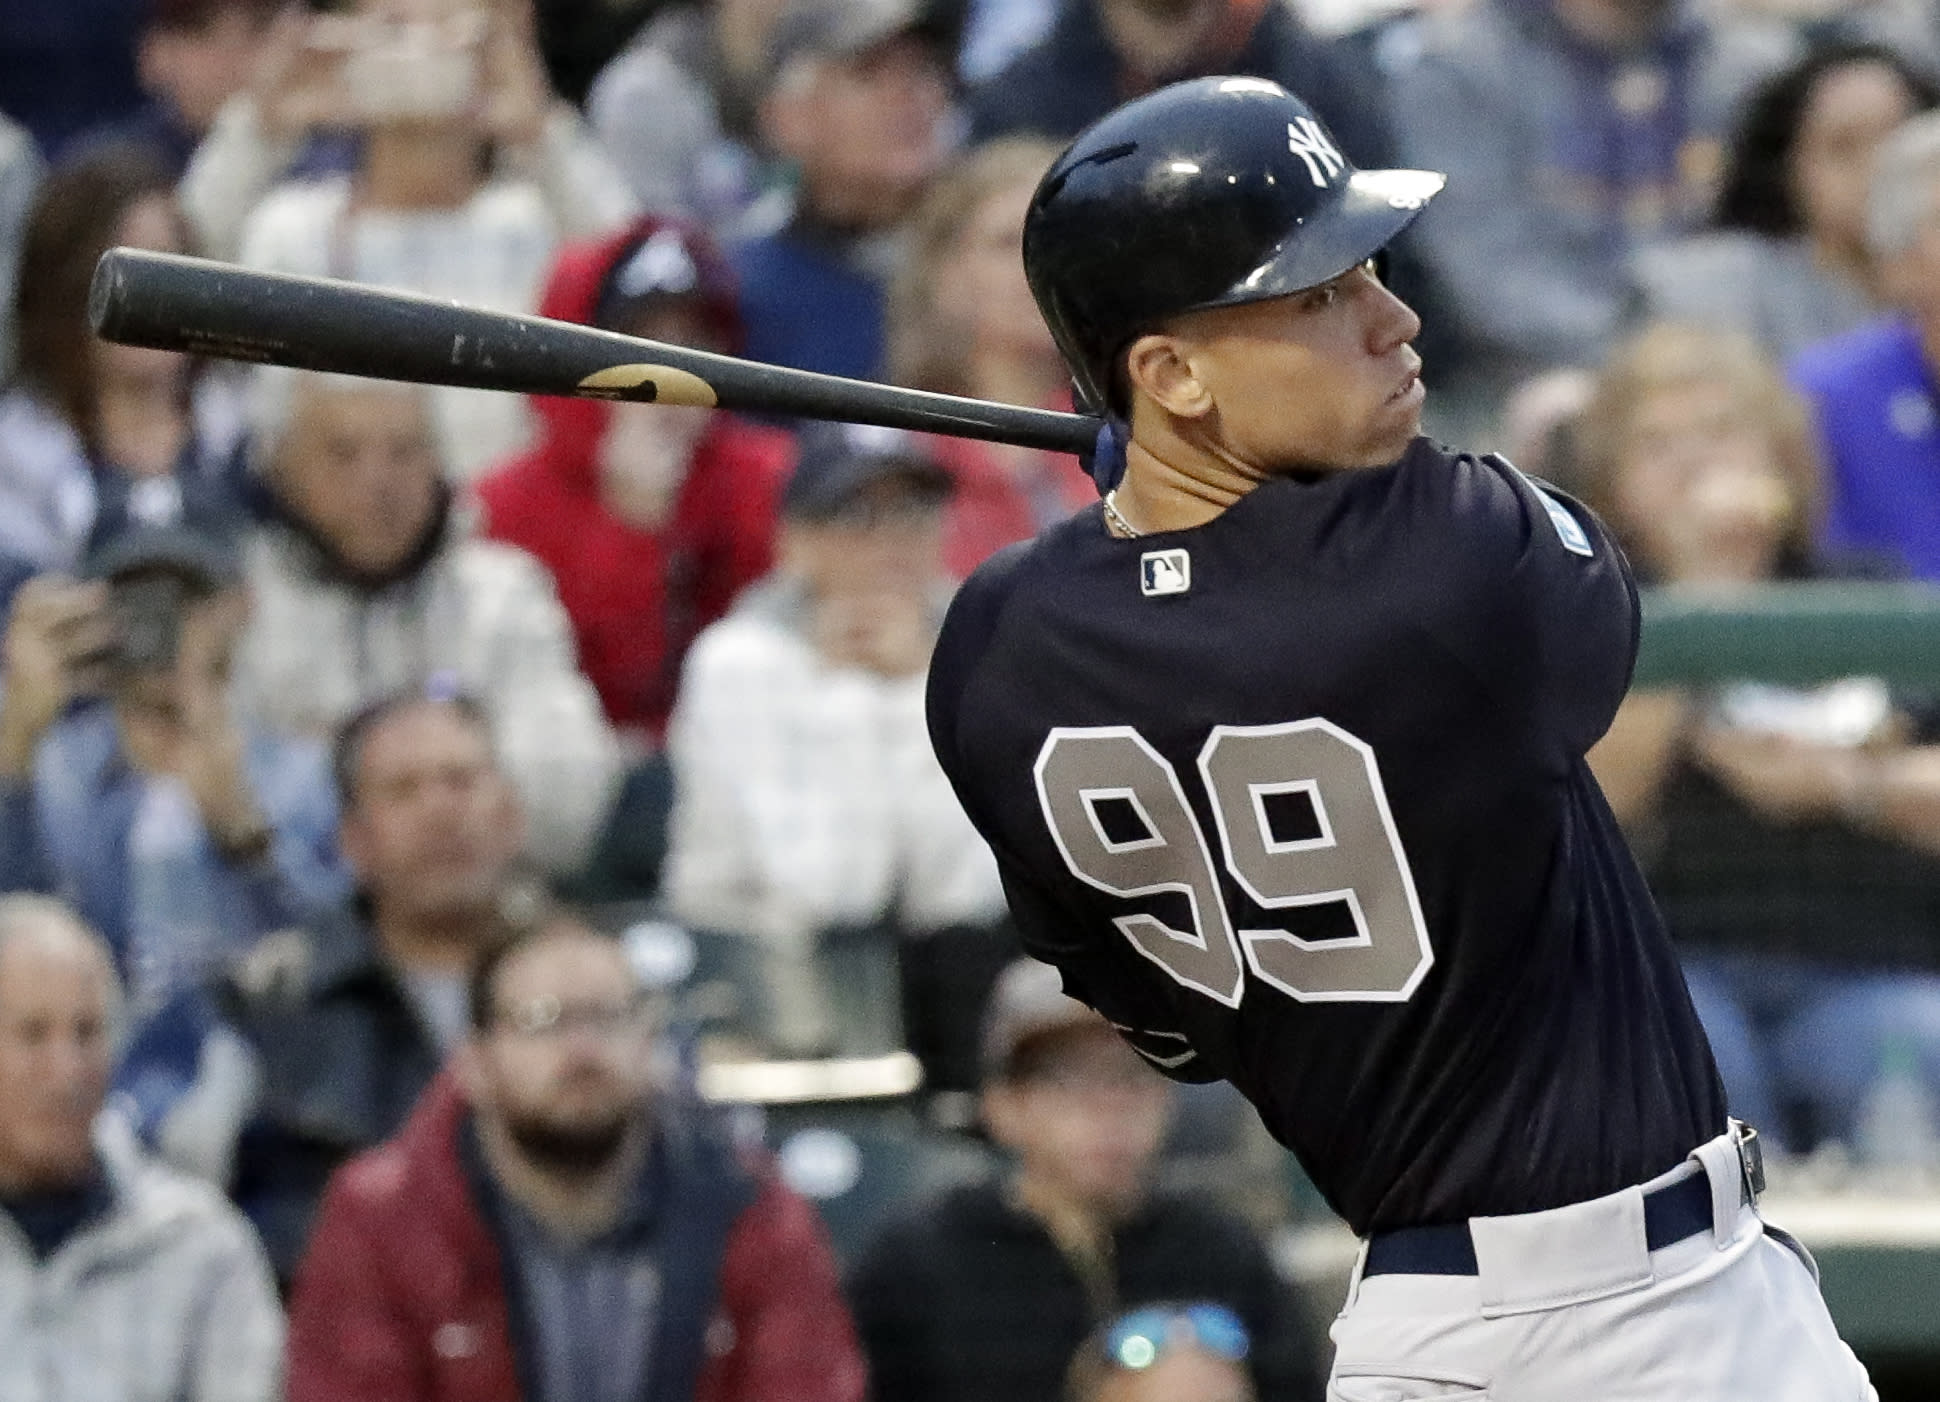 100-win Yankees limp into season with many injuries